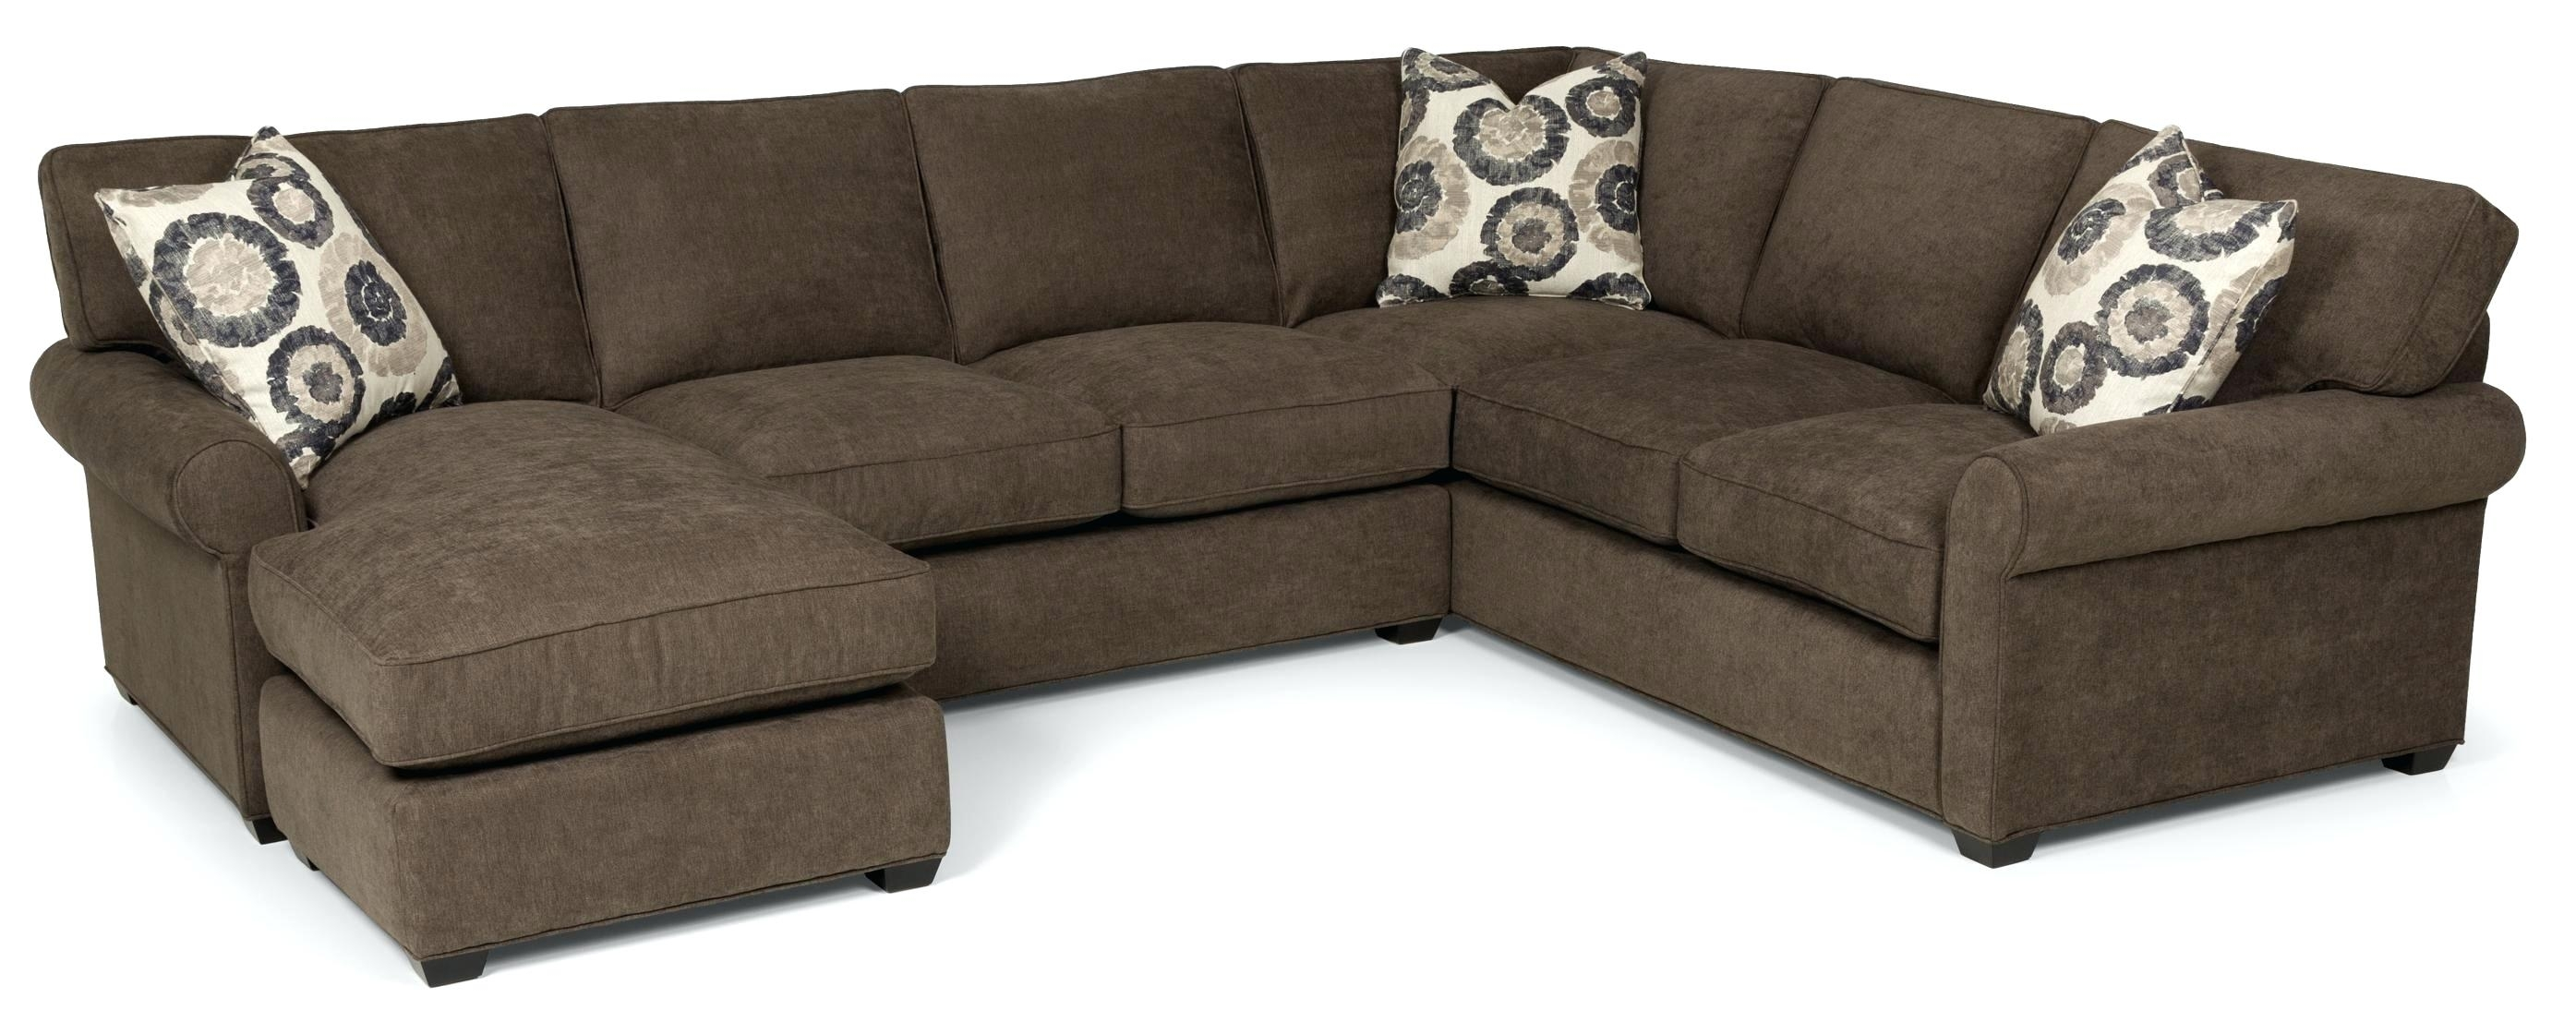 2 Piece Sectional Sofa With Chaise 2 Piece Sectional With Chaise Within Jobs Oat 2 Piece Sectionals With Left Facing Chaise (View 6 of 25)